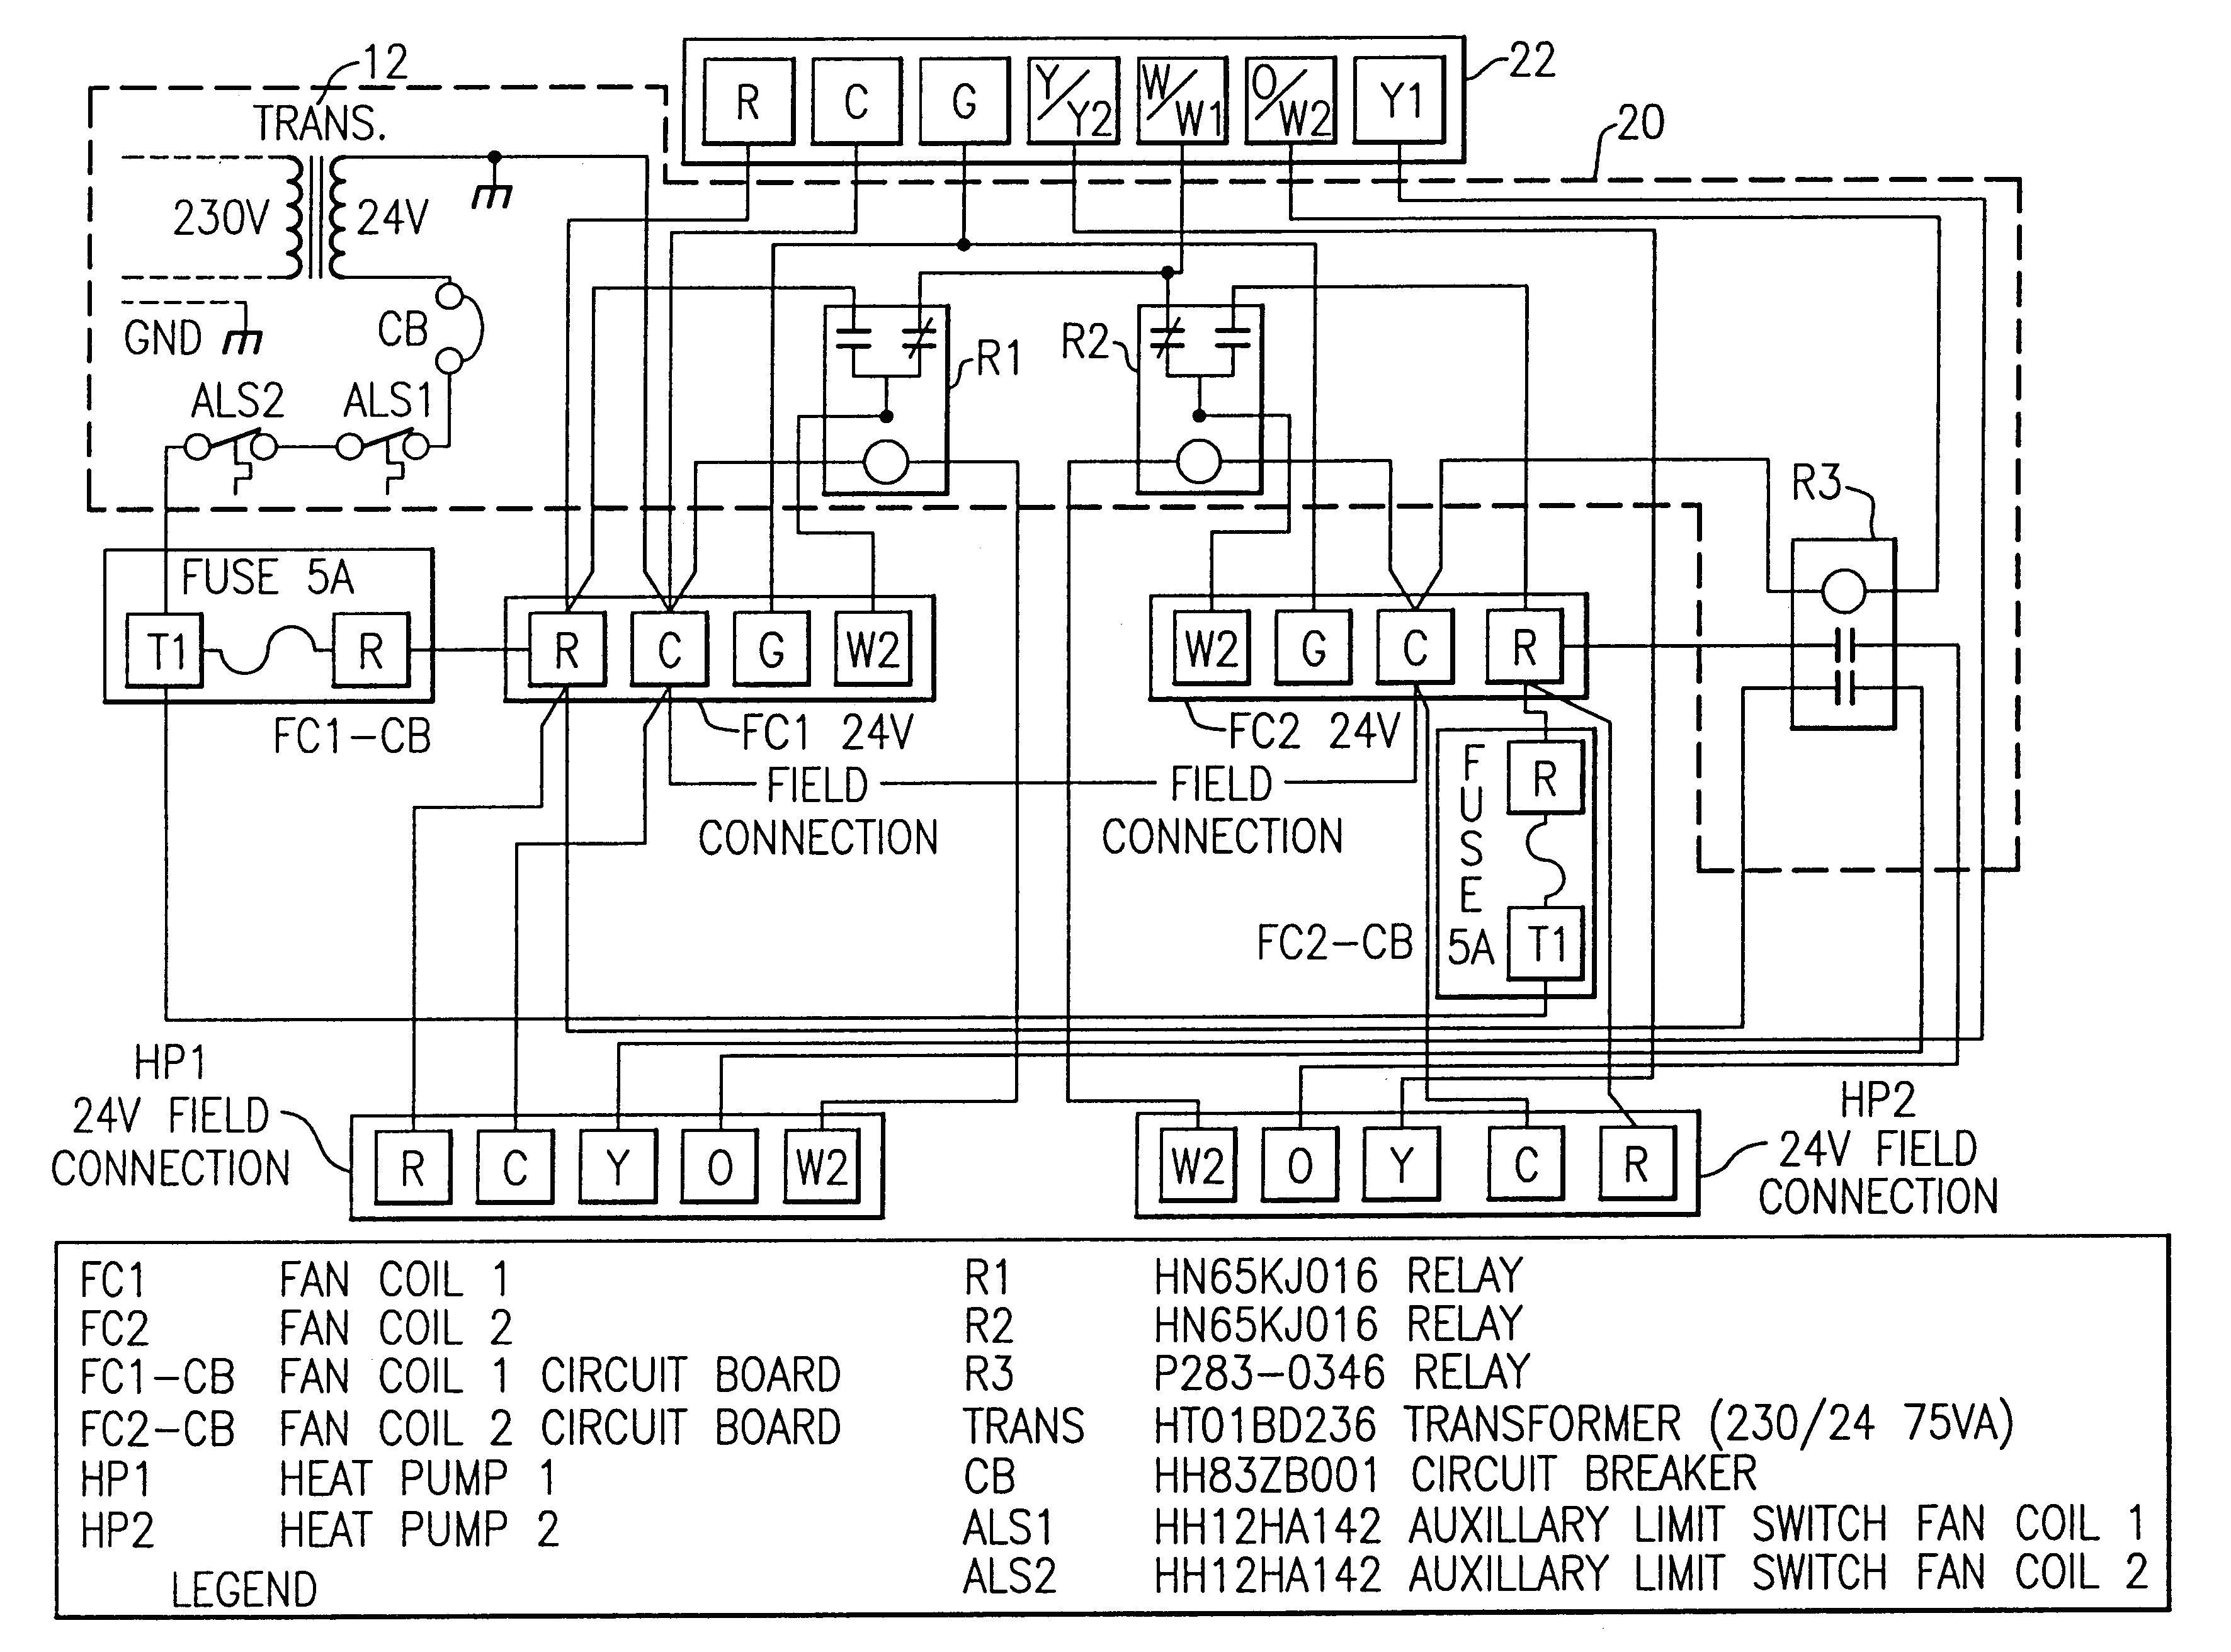 Wiring Diagram For A Furnace Blower Motor